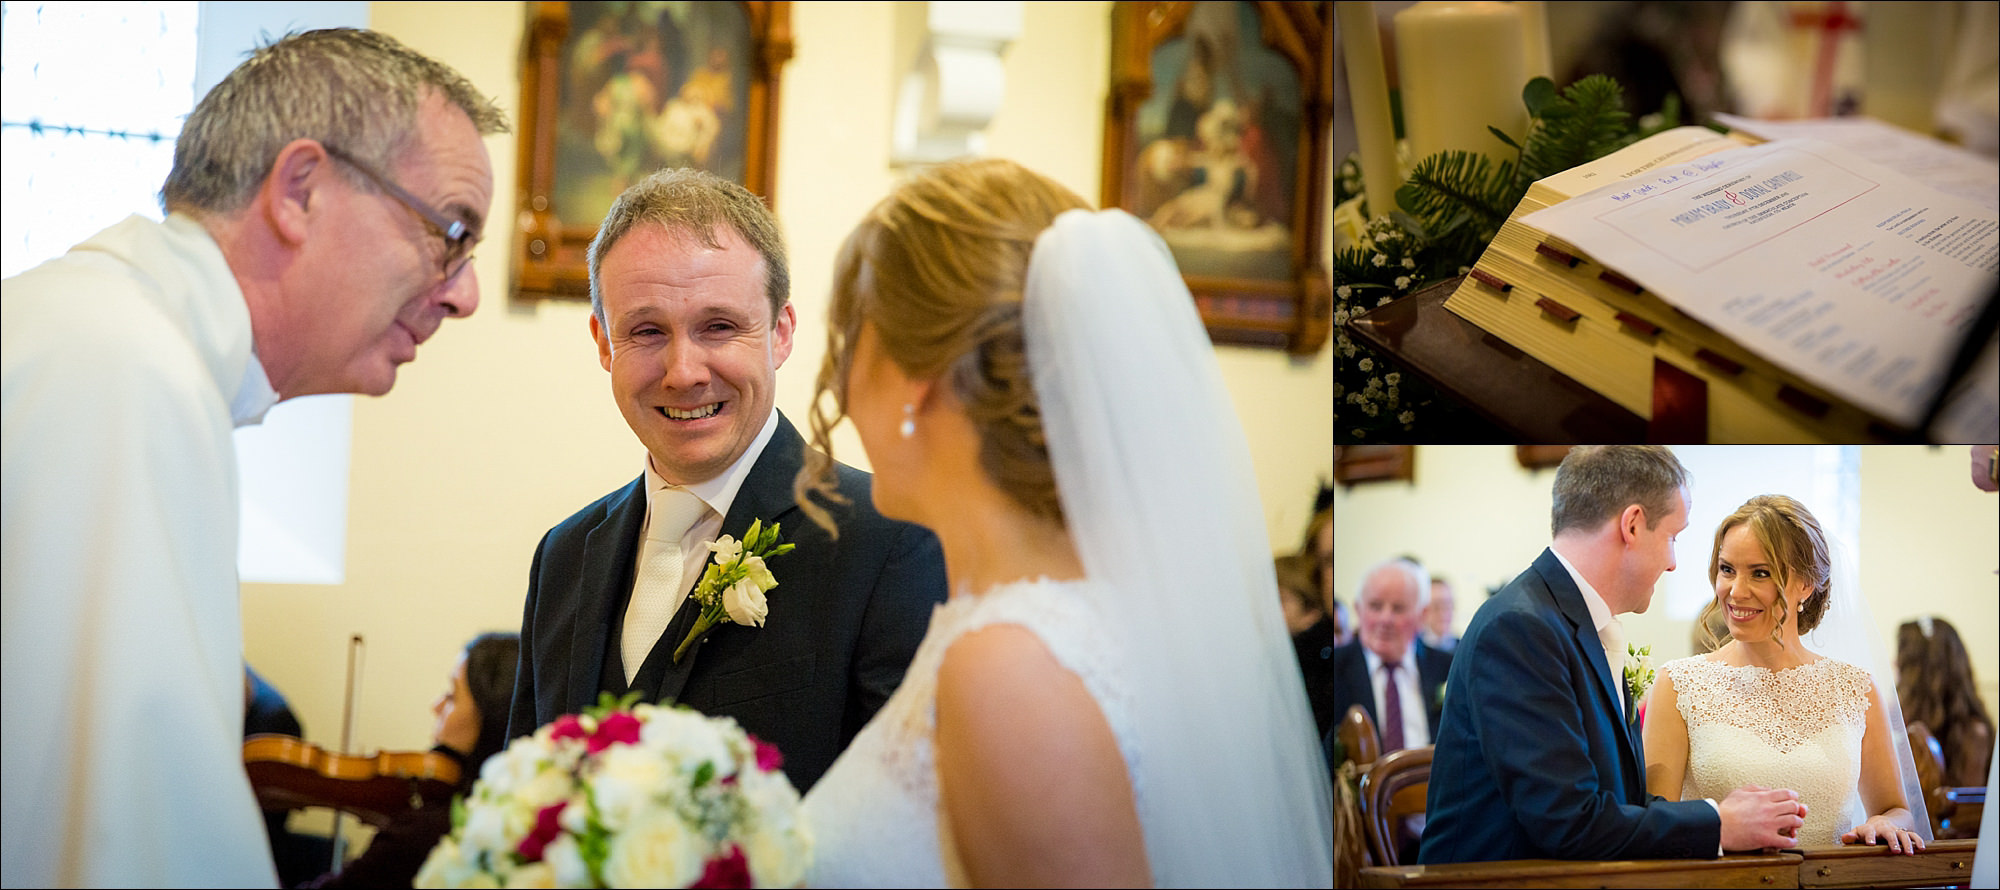 dublin wedding photographer david duignan photography tankardstown weddings slane rathfeigh church ireland 0018